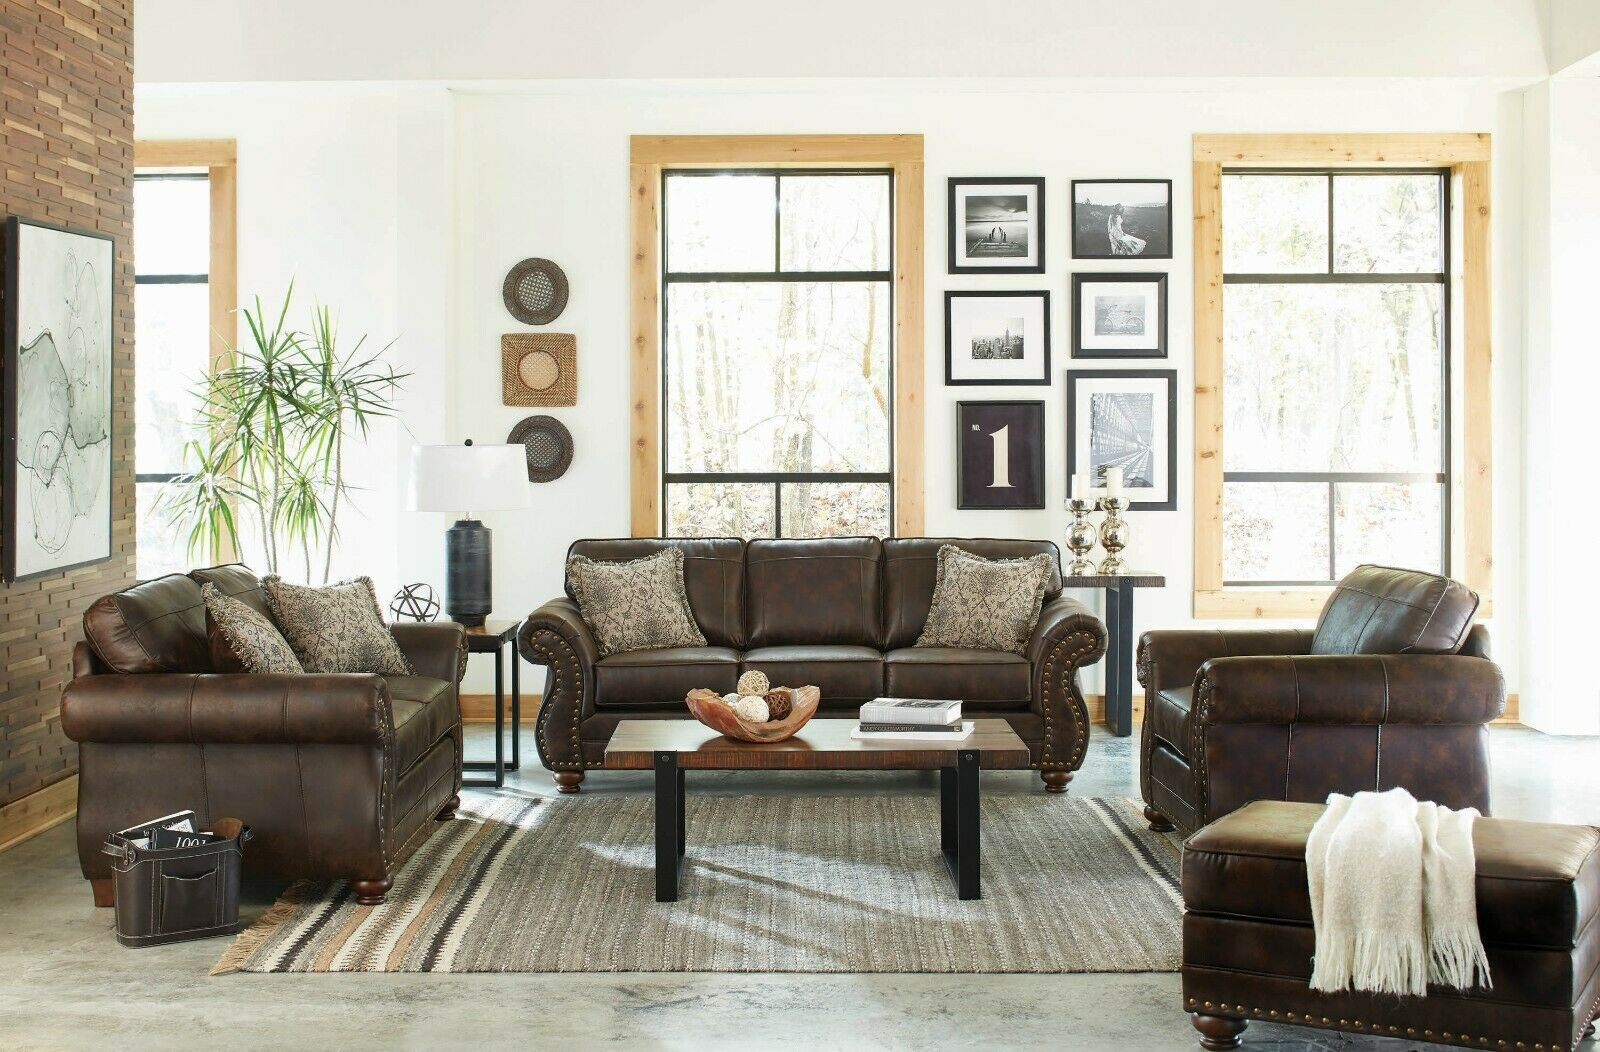 Traditional 3 Piece Sofa Loveseat Chair Set Brown Performance Microfib In 2020 Leather Couches Living Room Dark Brown Couch Living Room Brown Leather Couch Living Room